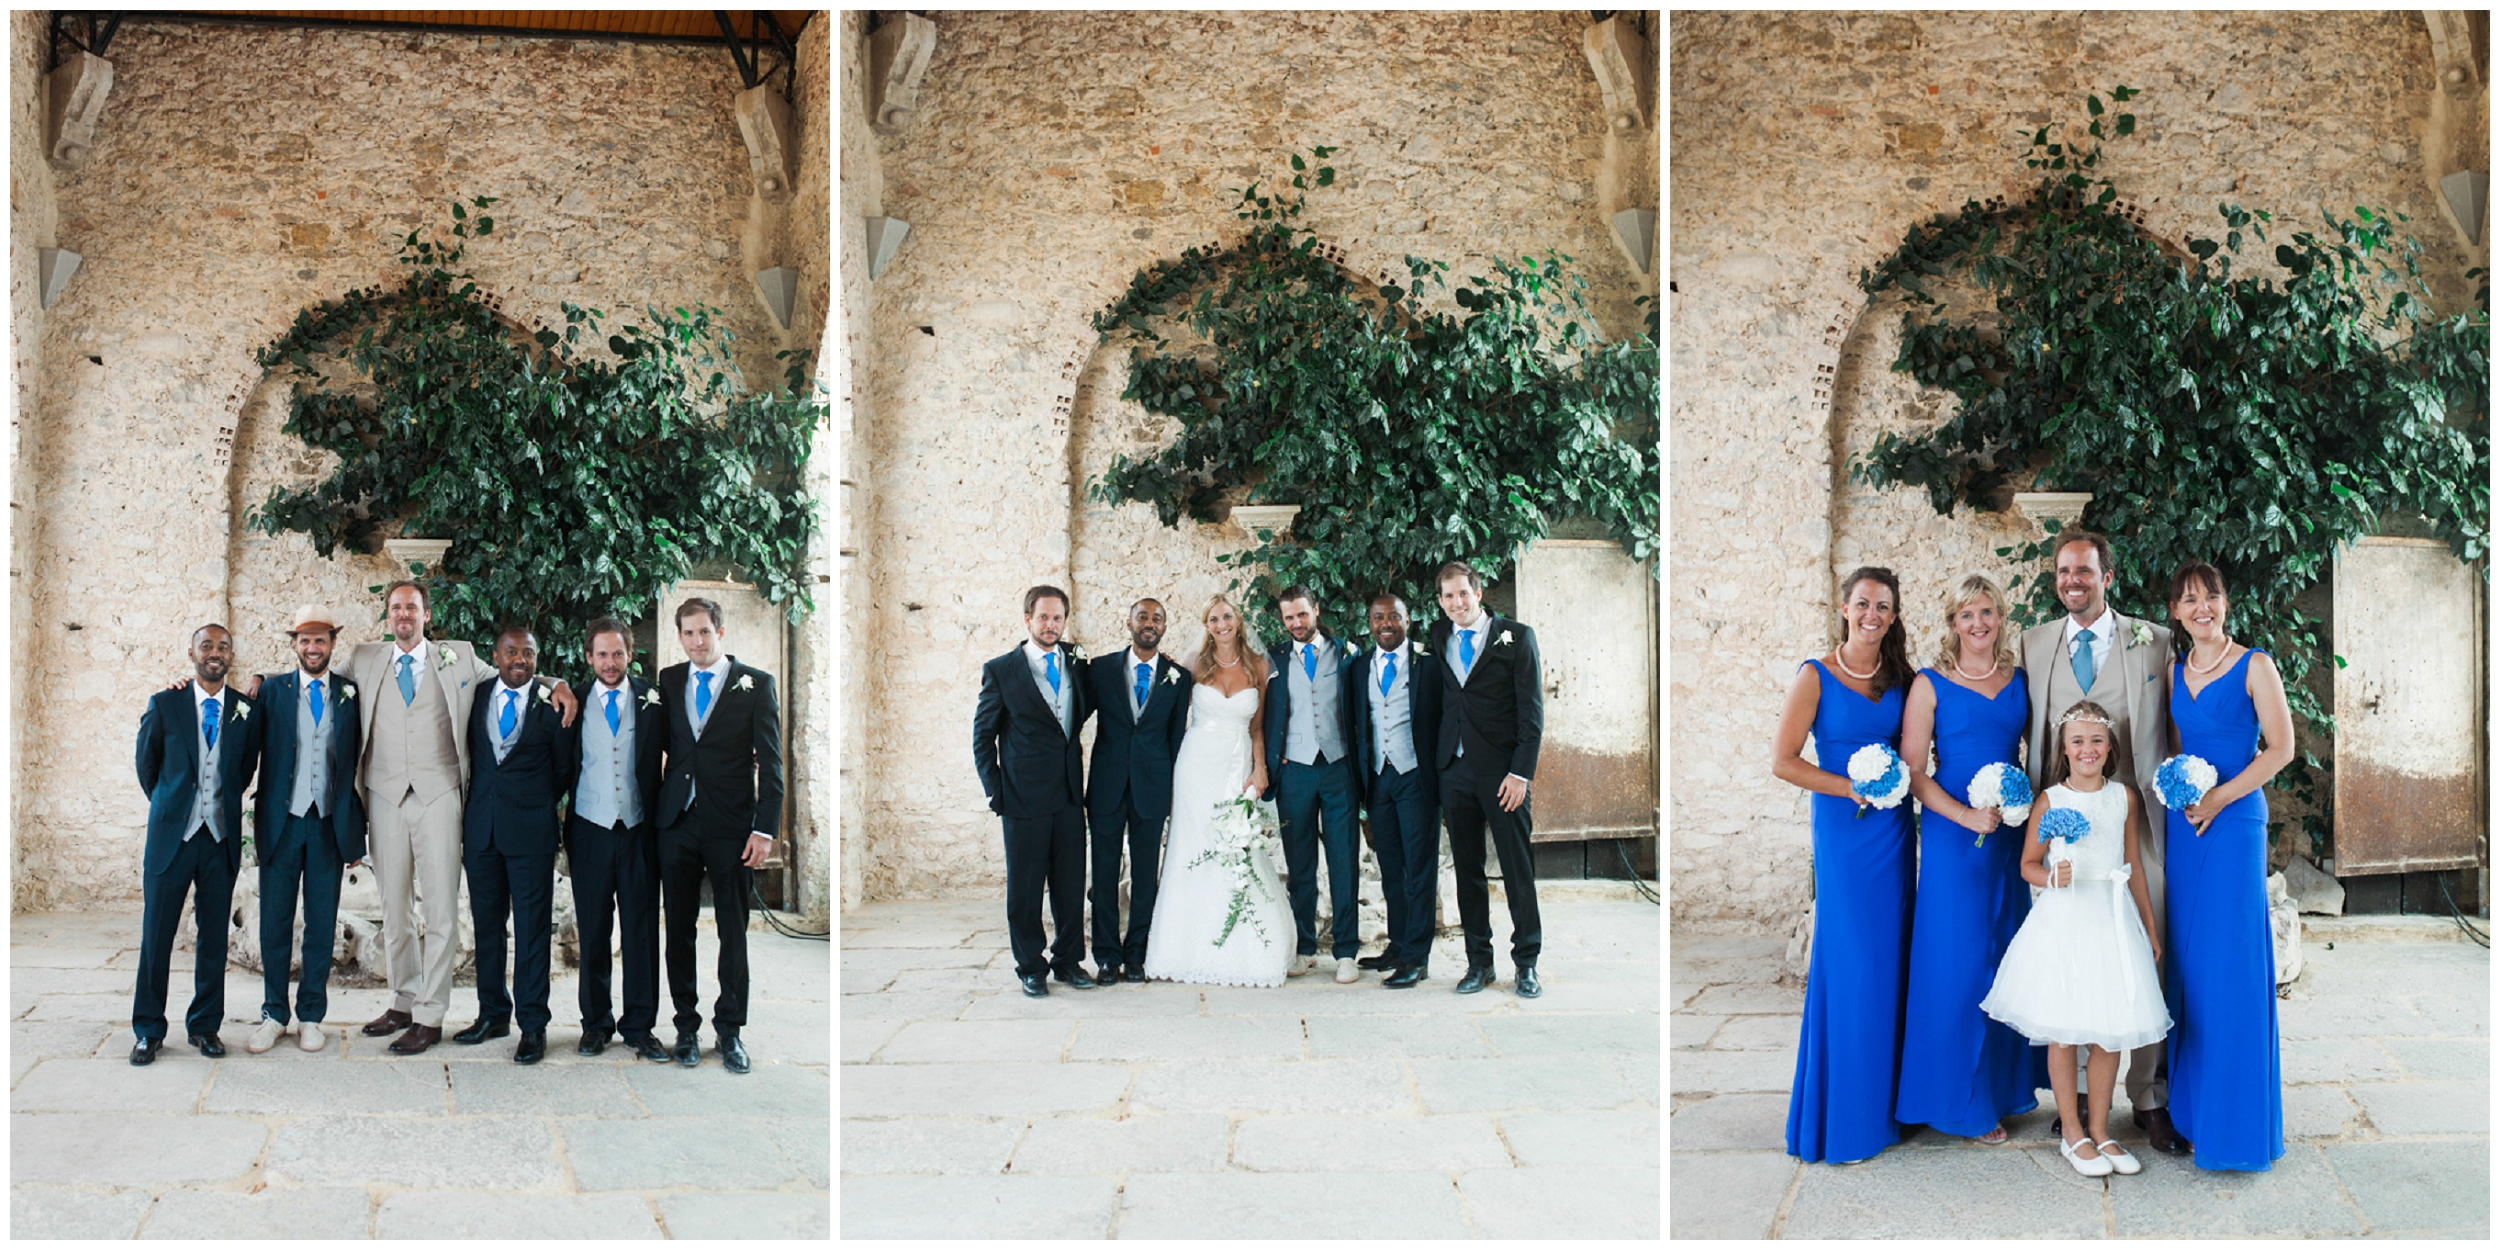 maria+rao+wedding+photographer+portugal_0185.jpg